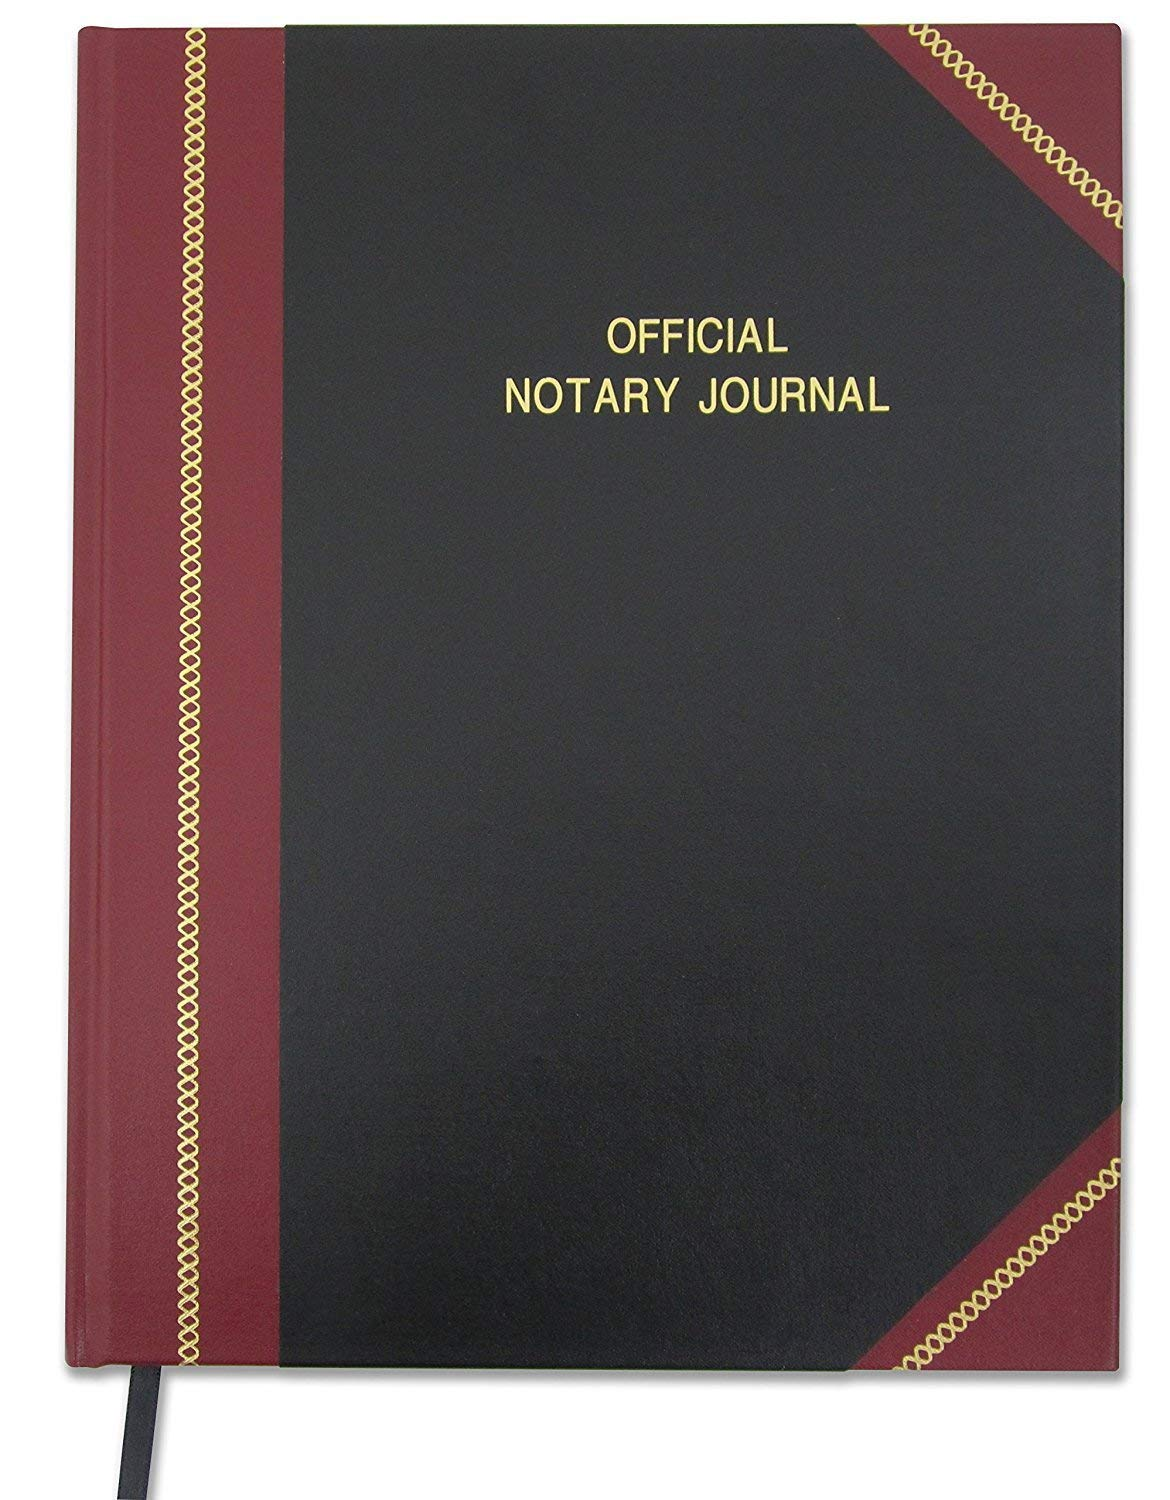 BookFactory Official Notary Journal/Log Book 96 Pages 8.5'' X 11'' 380 Entries 50 State Journal of Notarial Acts, Black and Burgundy Cover, Black Ribbon Hardbound (LOG-096-7CS-LKMST71(Notary)) by BookFactory